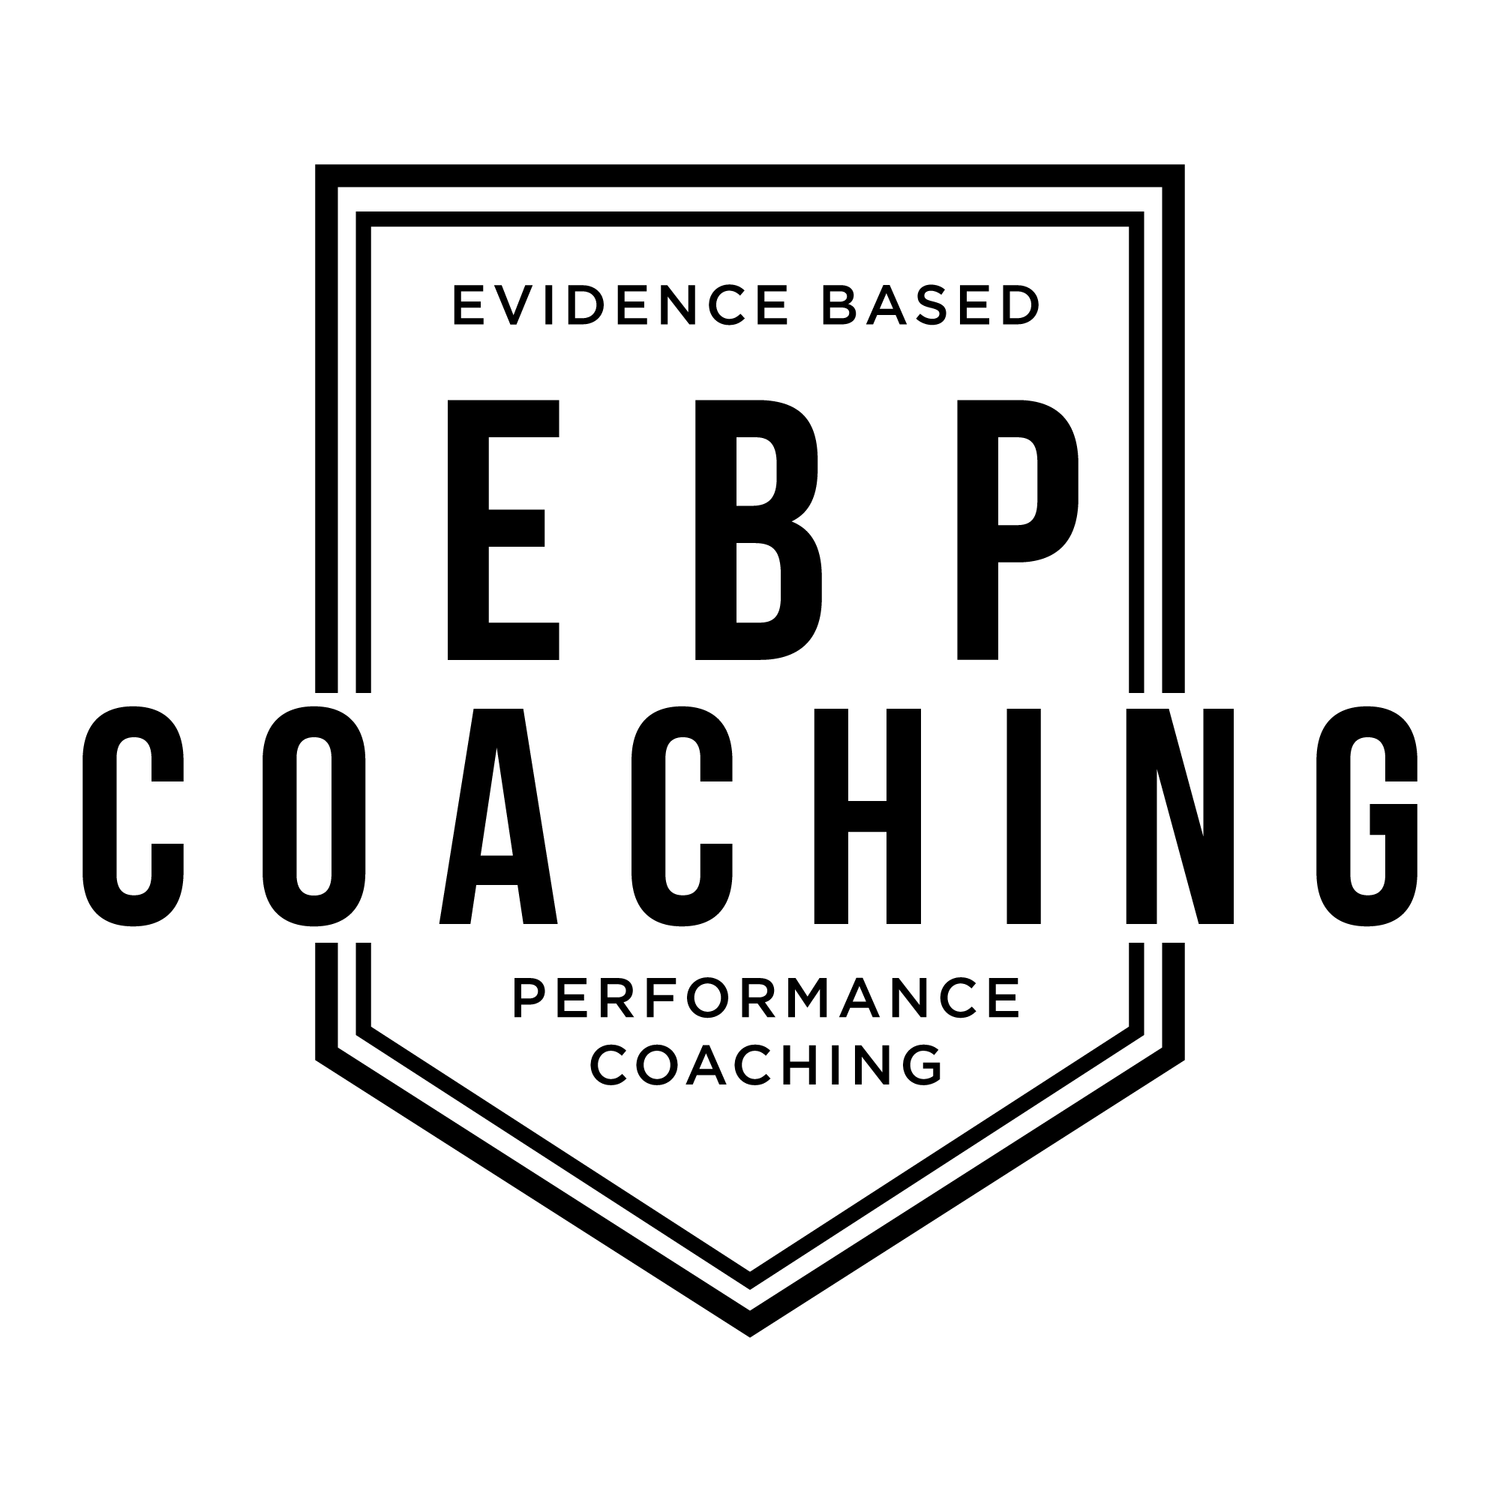 EBP Coaching: Evidence Based Methods, Optimal Results